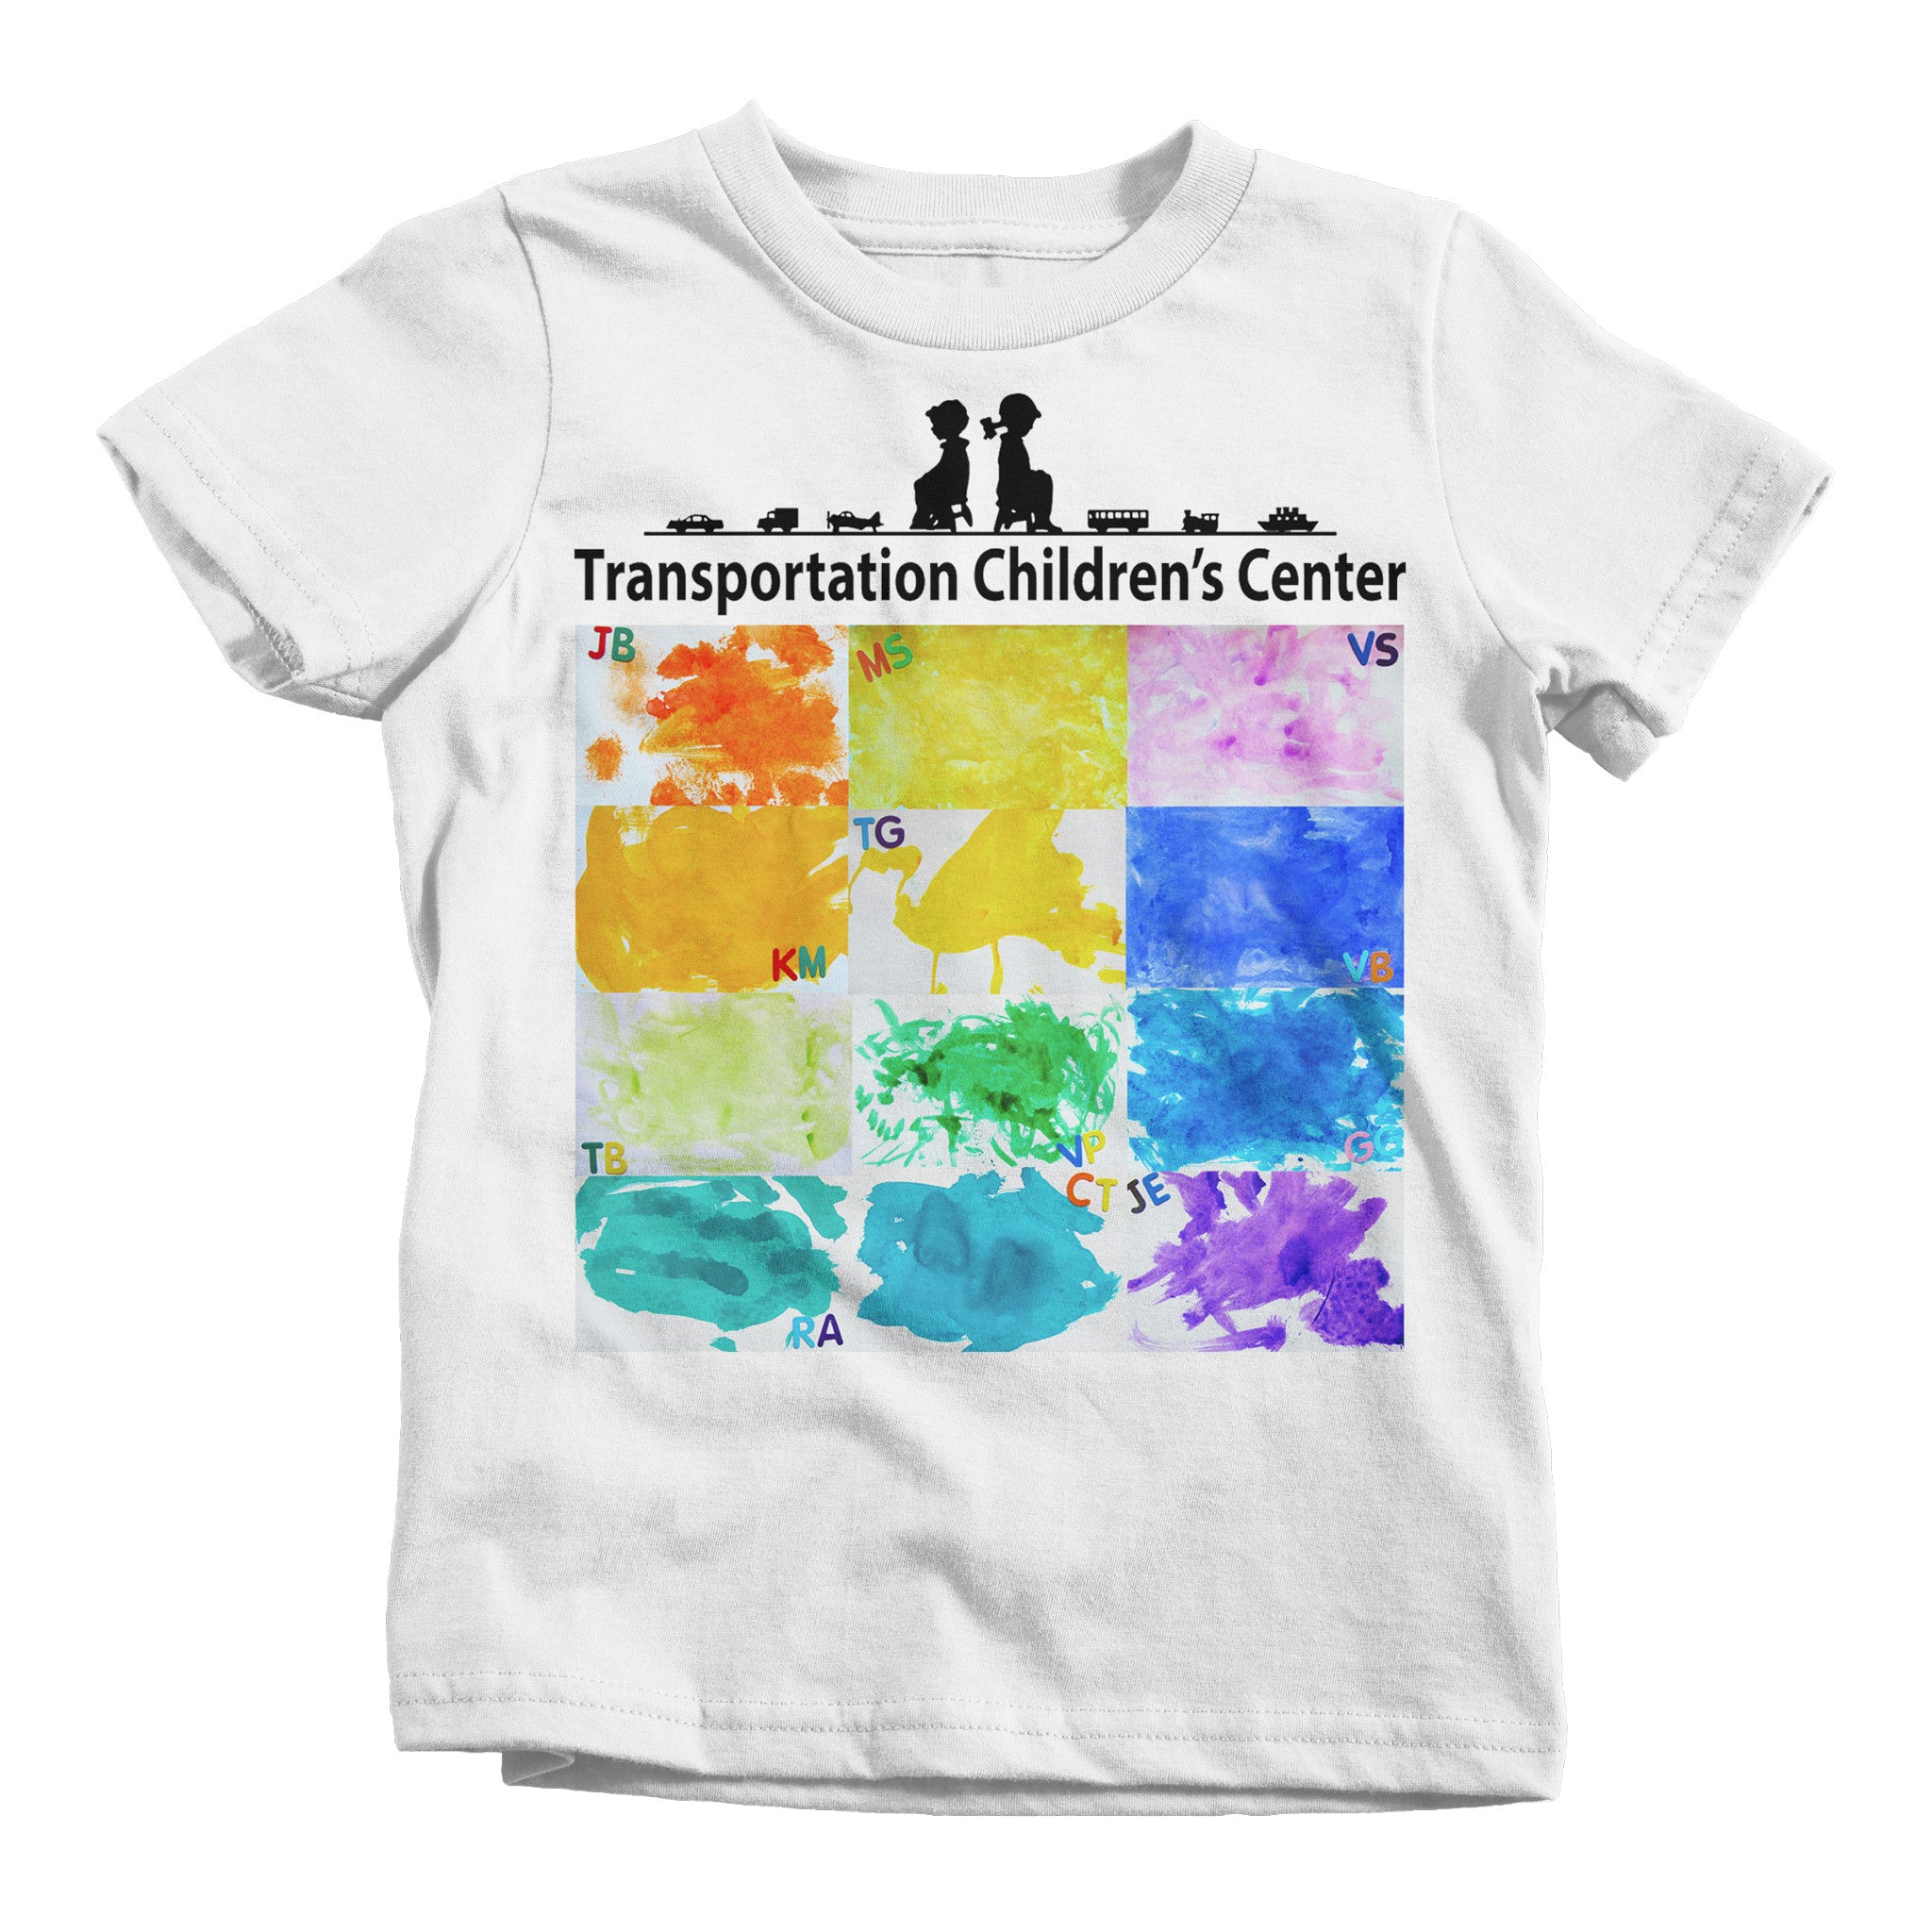 Toddler Two - Adult T-shirt - Rightside Shirts